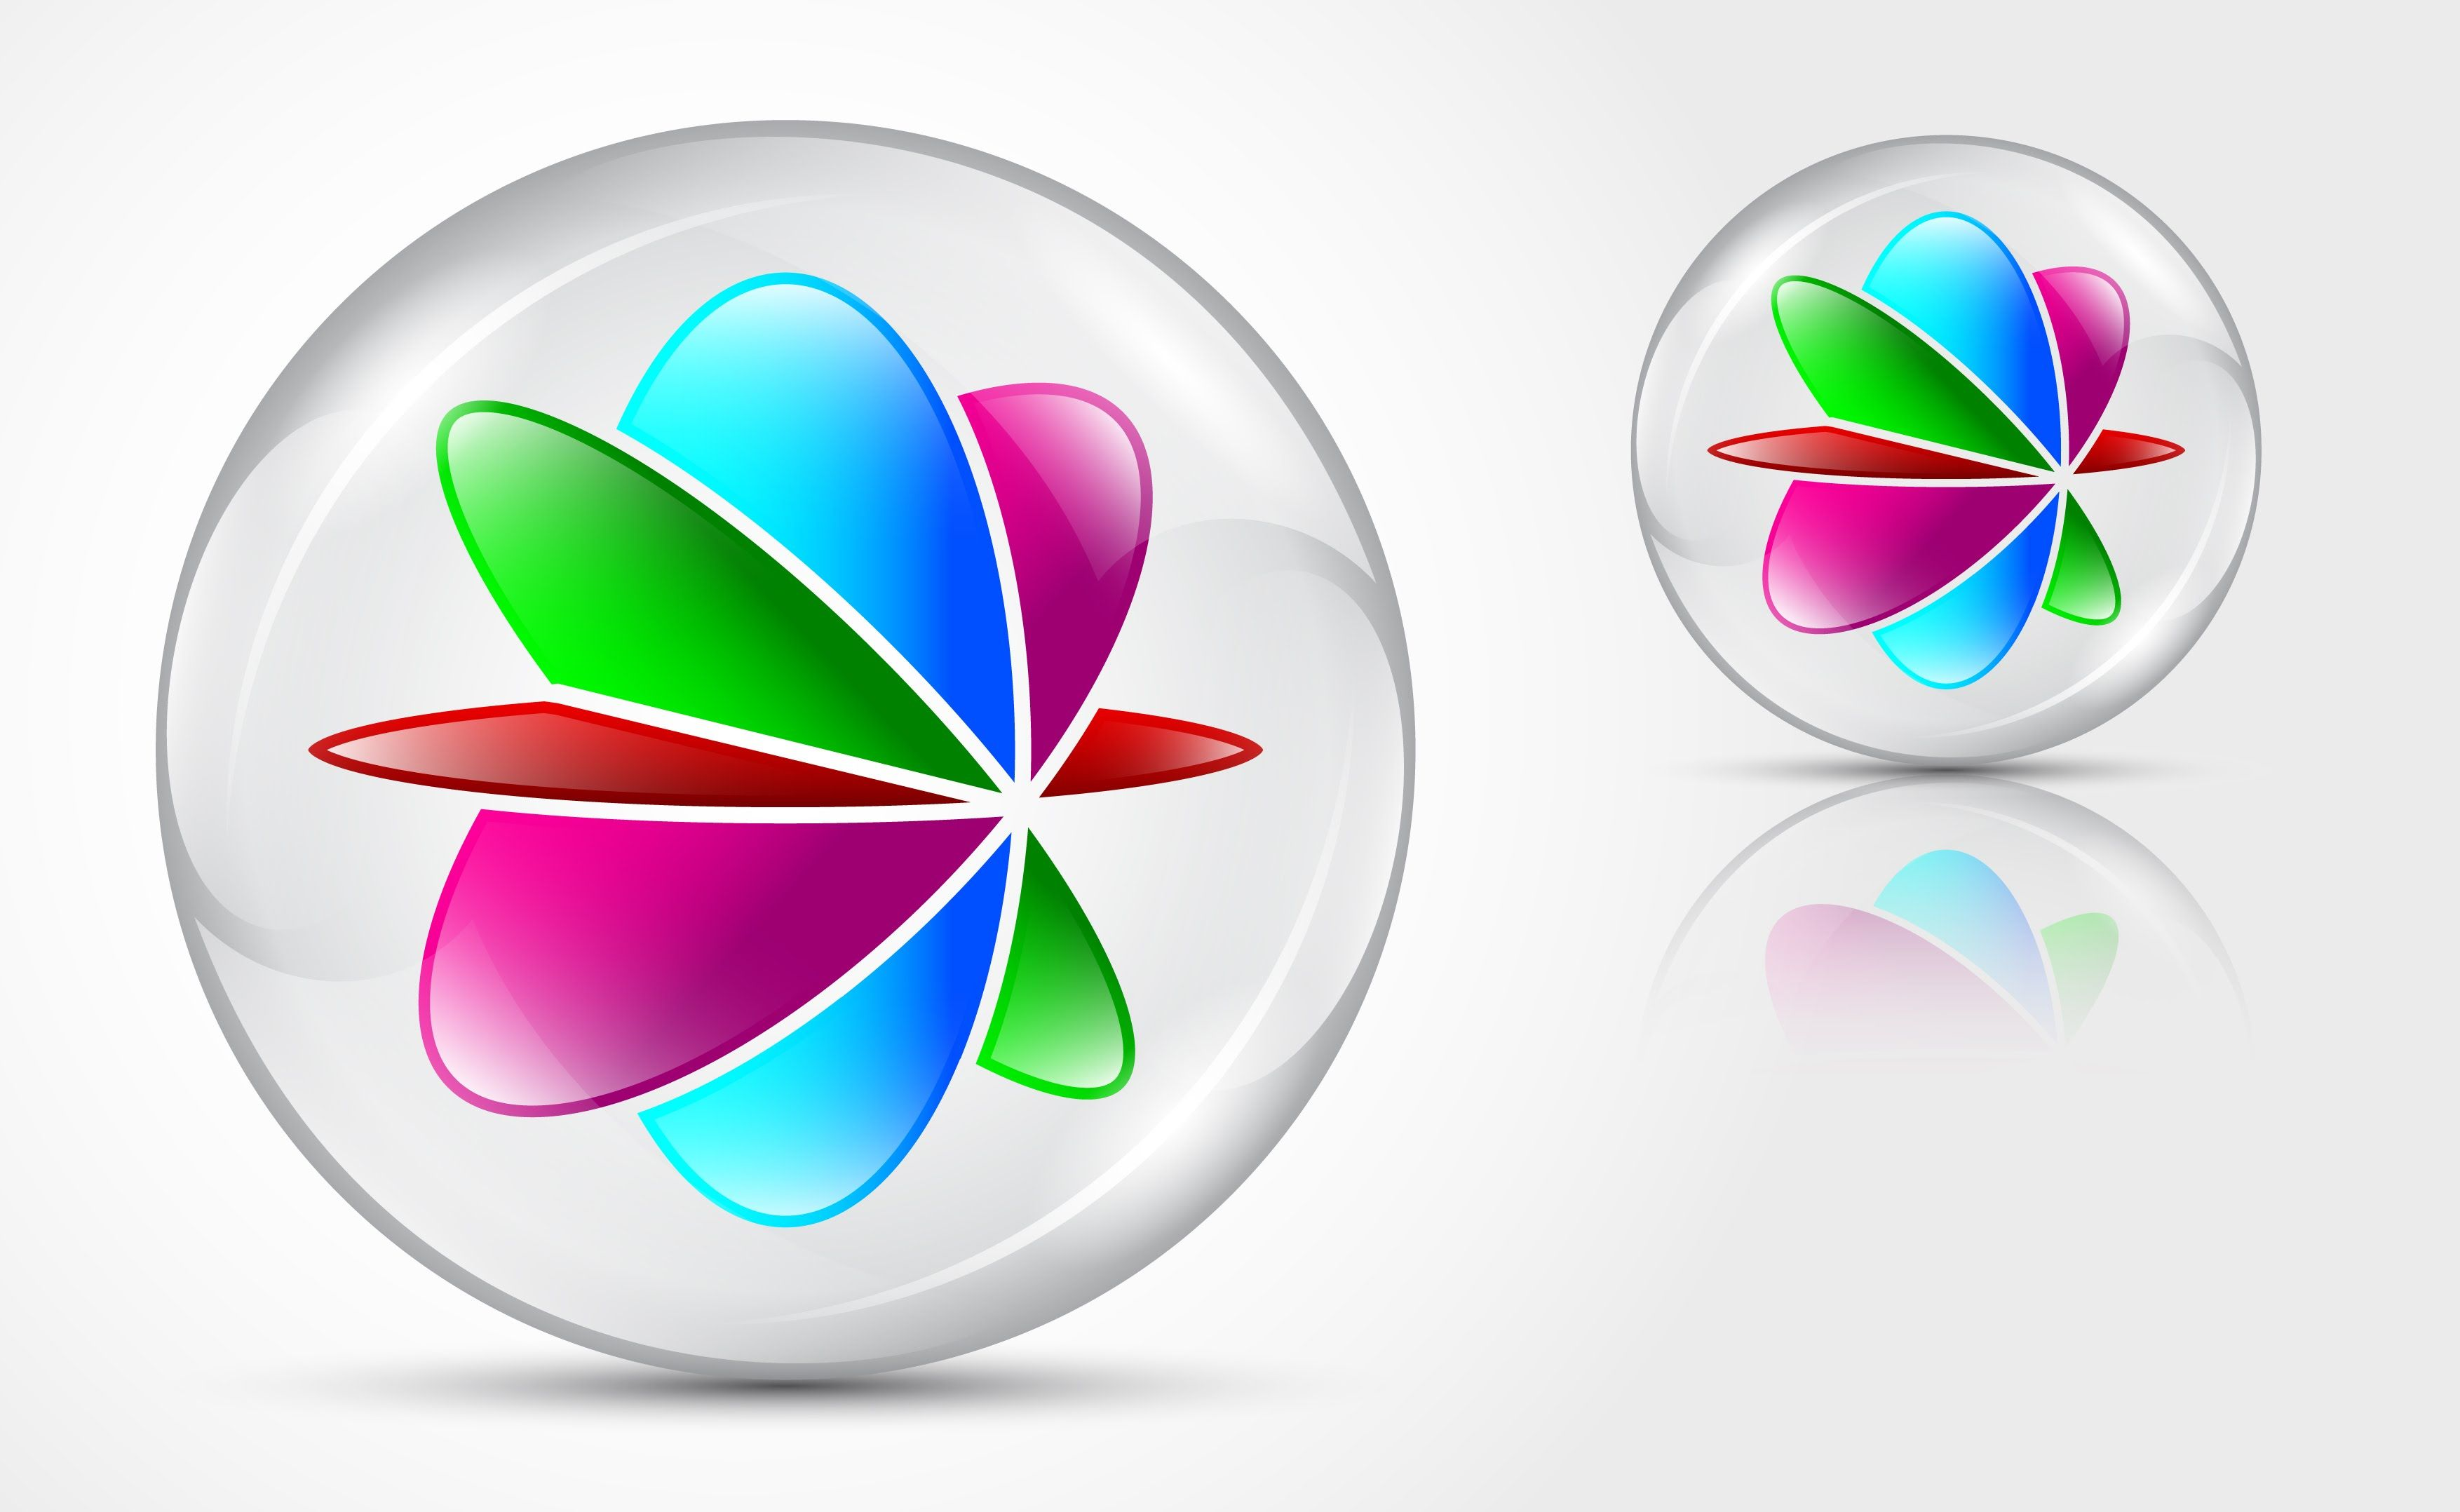 3D Logo Design in vector format. This is Adobe Illustrator